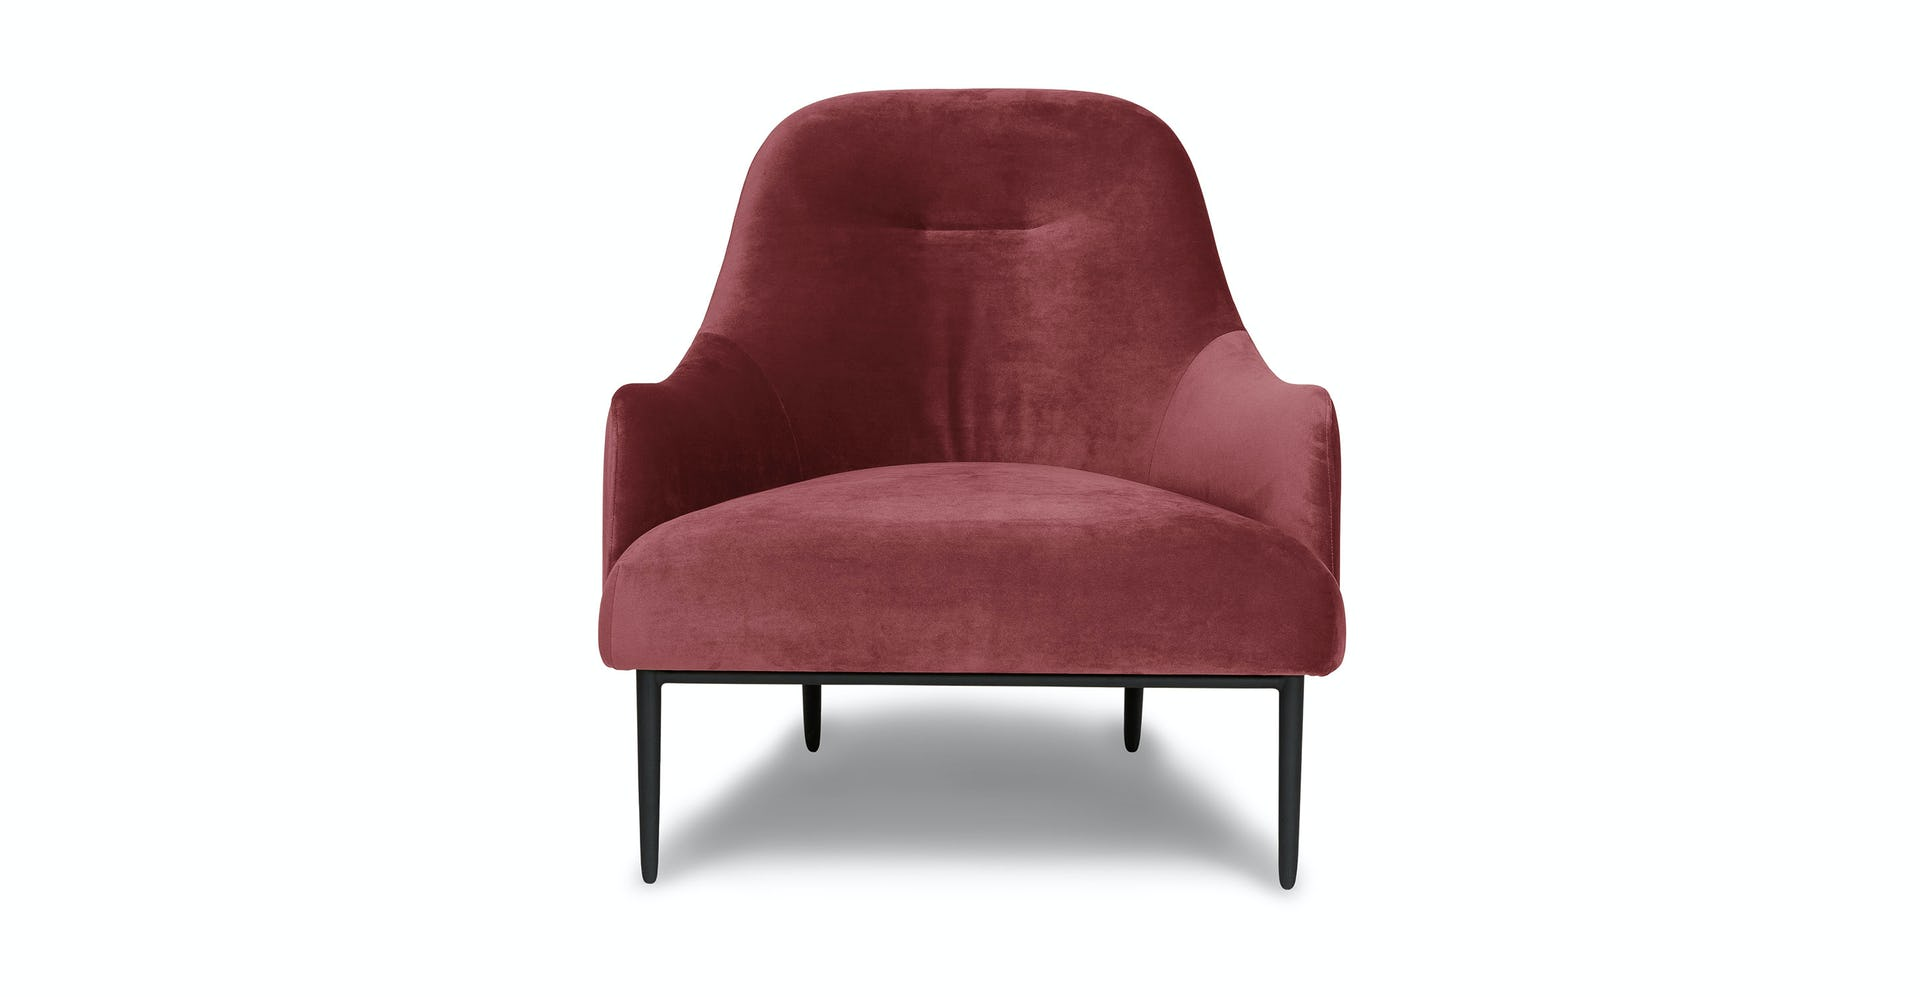 Admirable Rose Pink Embrace Velvet Lounge Chair Article Unemploymentrelief Wooden Chair Designs For Living Room Unemploymentrelieforg